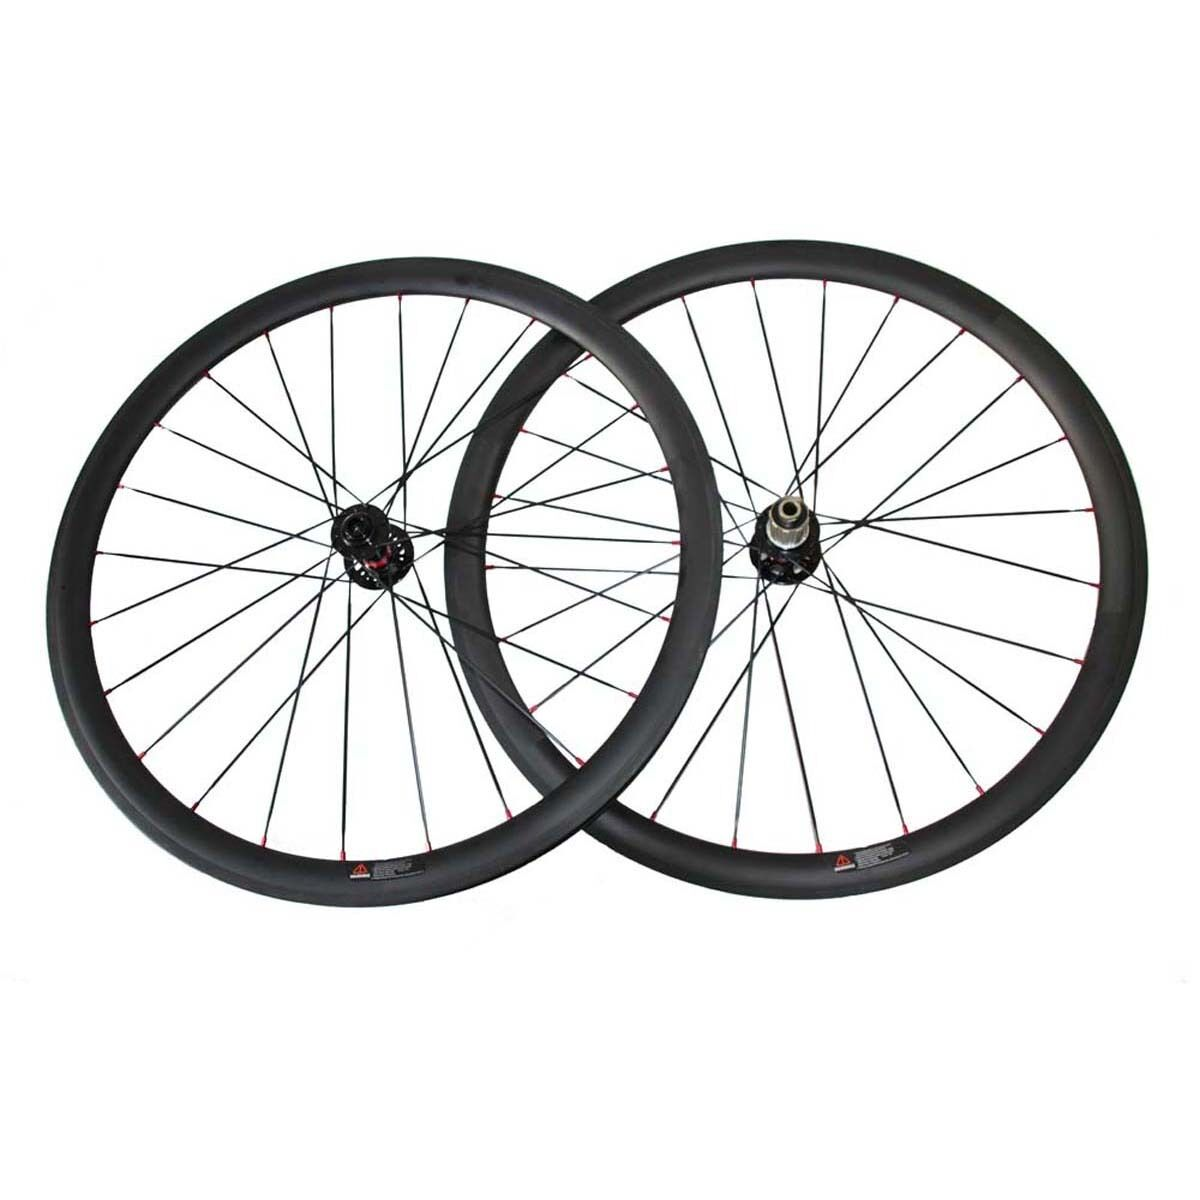 20.5mm or 23mm width 38mm clincher full carbon cyclocross bicycle wheelset